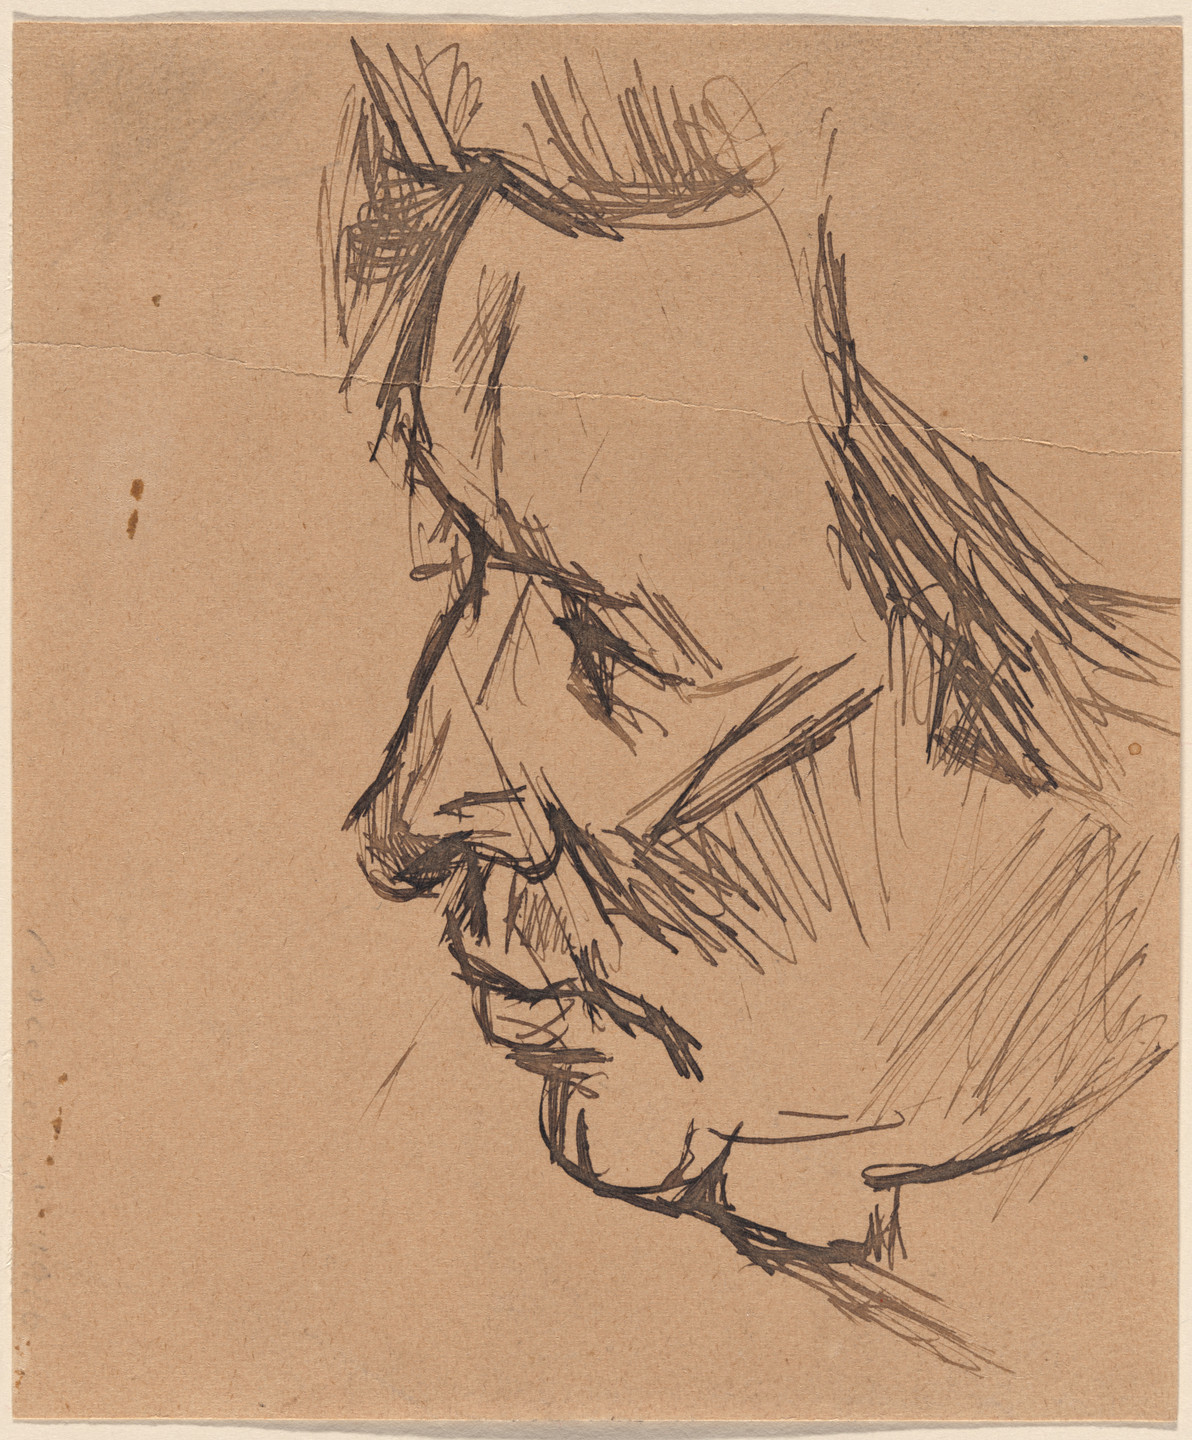 Umberto Boccioni. Study for Portrait of Ferrucio Busoni. 1916